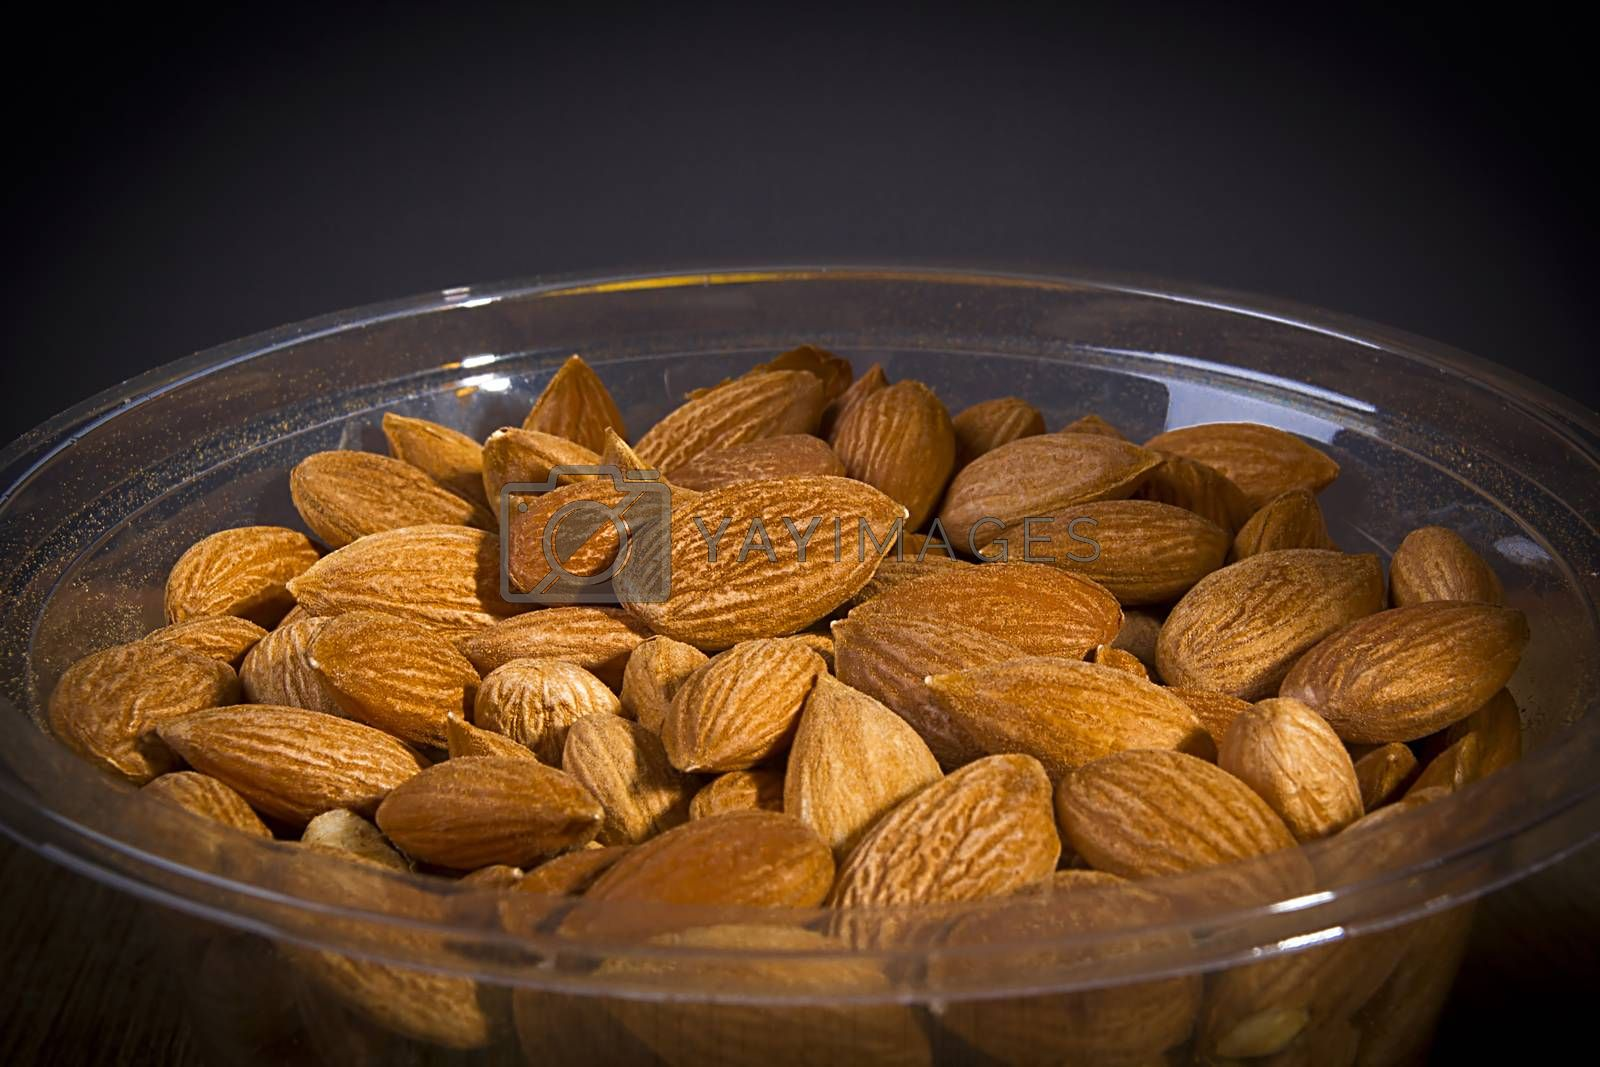 Dried almonds in plastic packaging close up